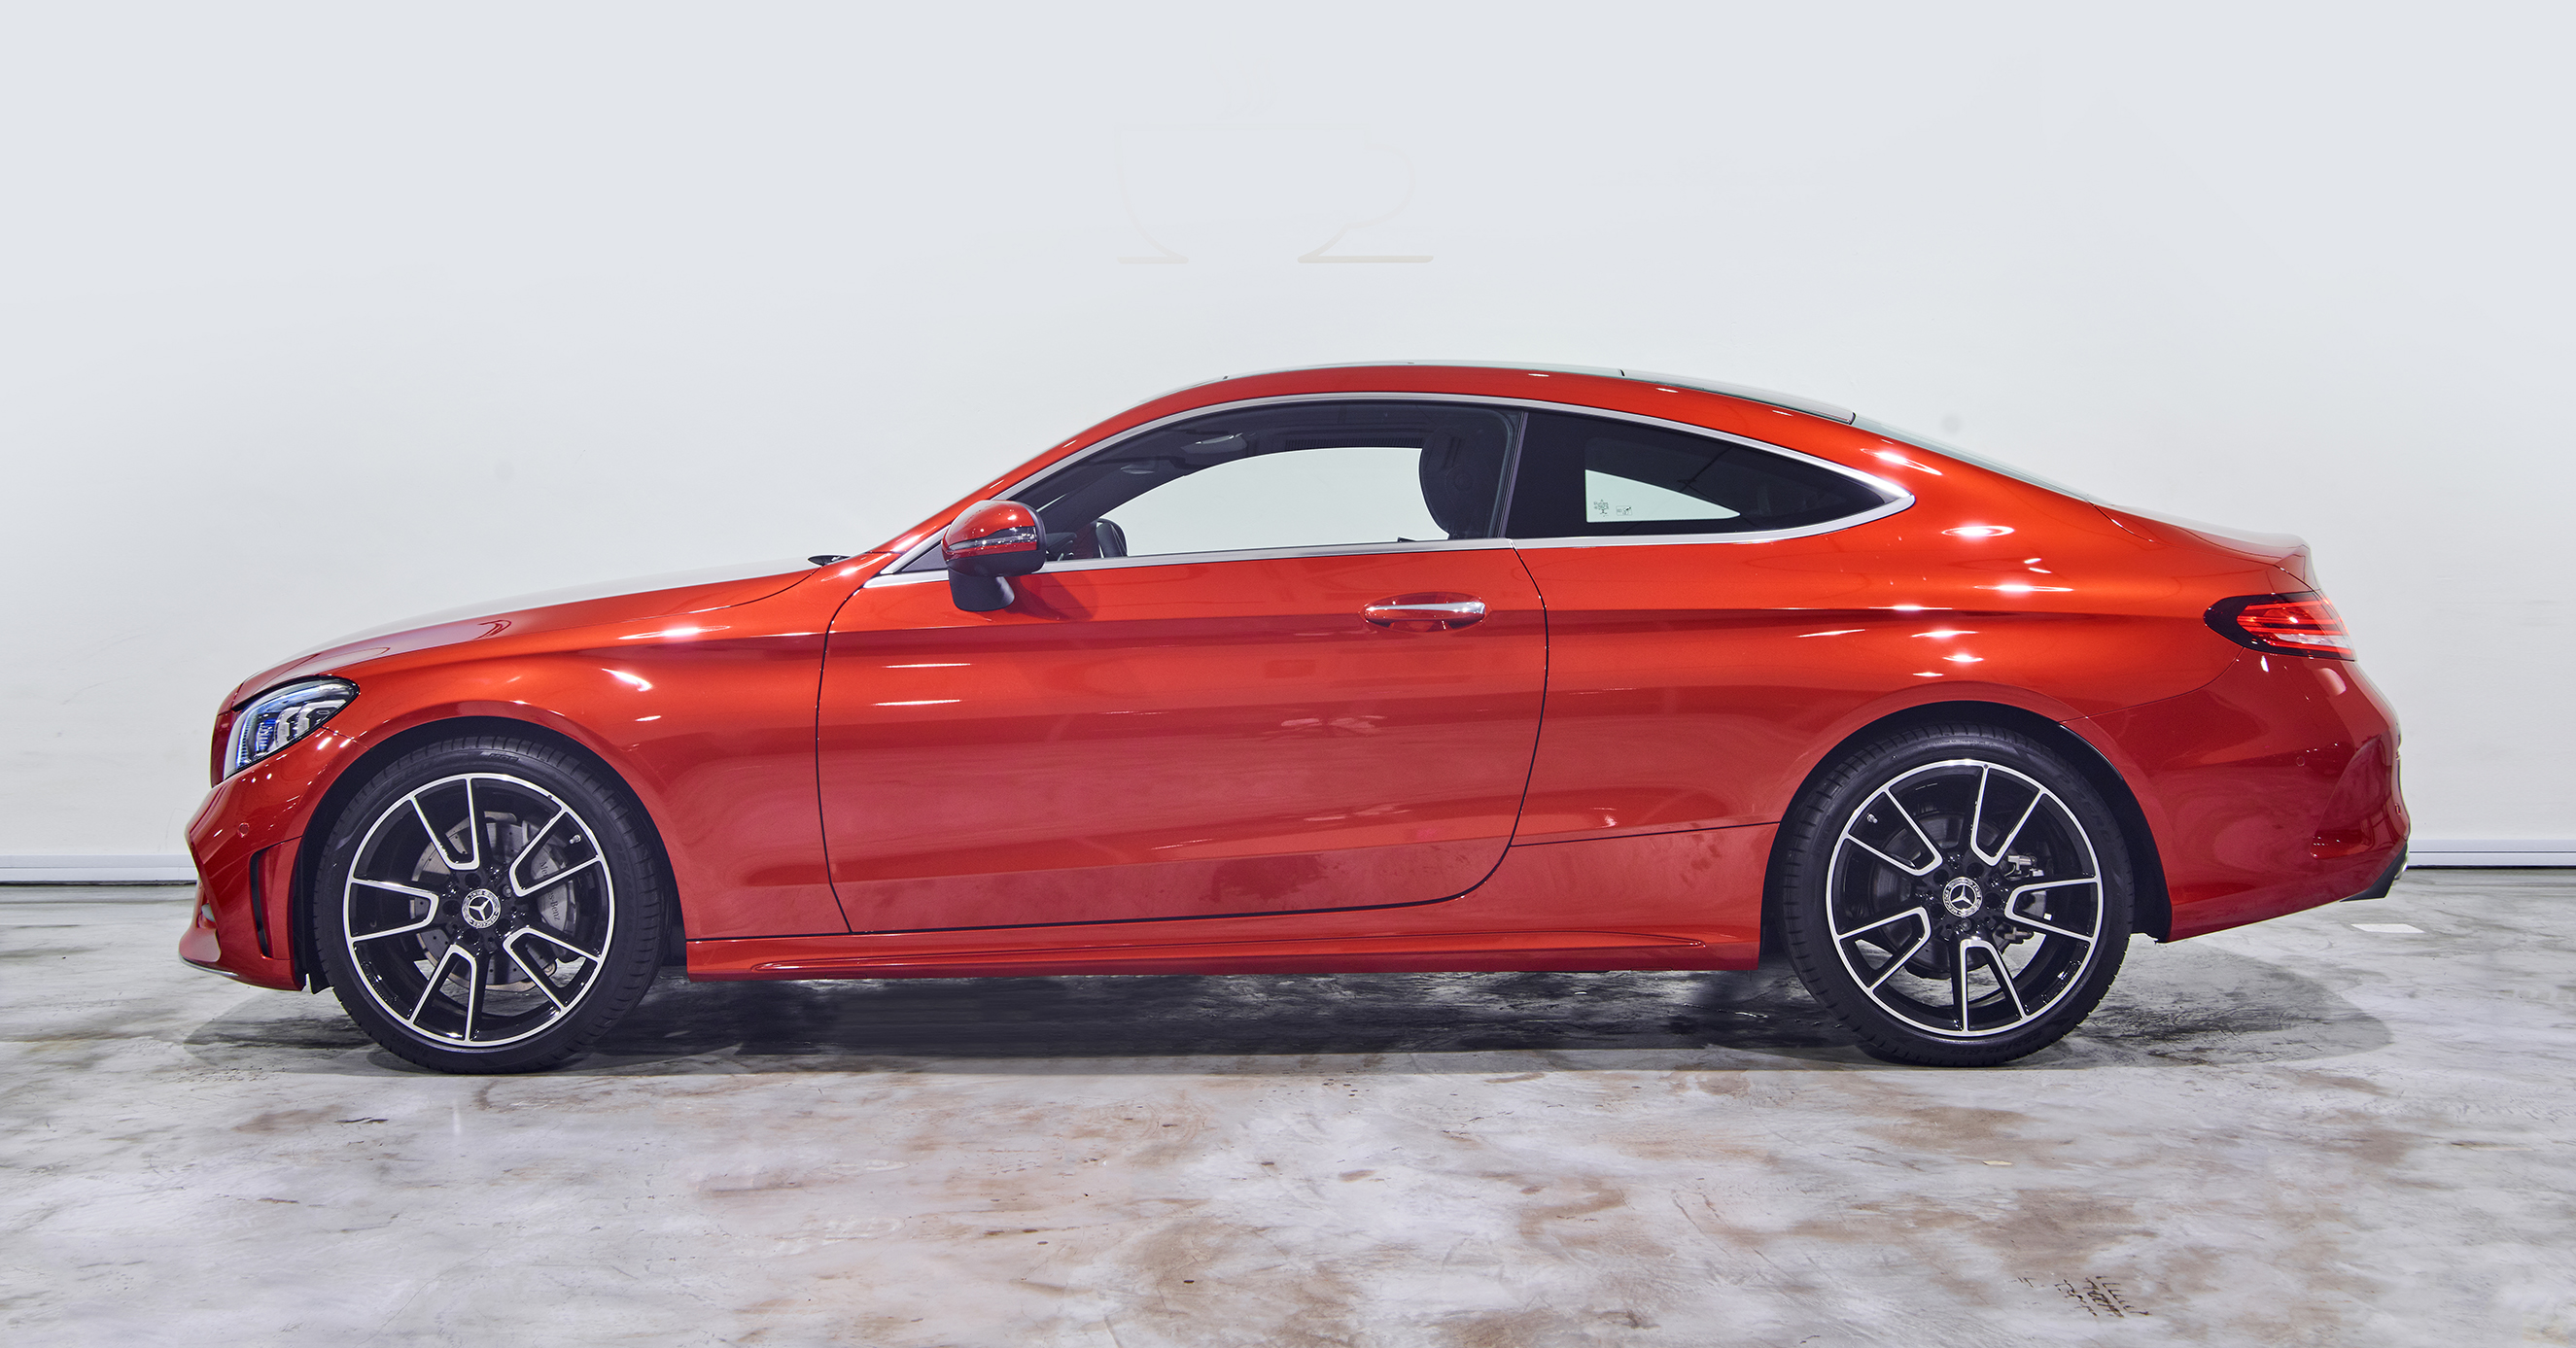 A cut above, and a coupe ahead. Its wind-slicing shape is sharpened. Its athletic stance, assertive. Its brilliant details, polished. The sporty C-Class Coupe displays its state-of-the-art innovations and turbocharged power in a muscular frame with the power to seduce.